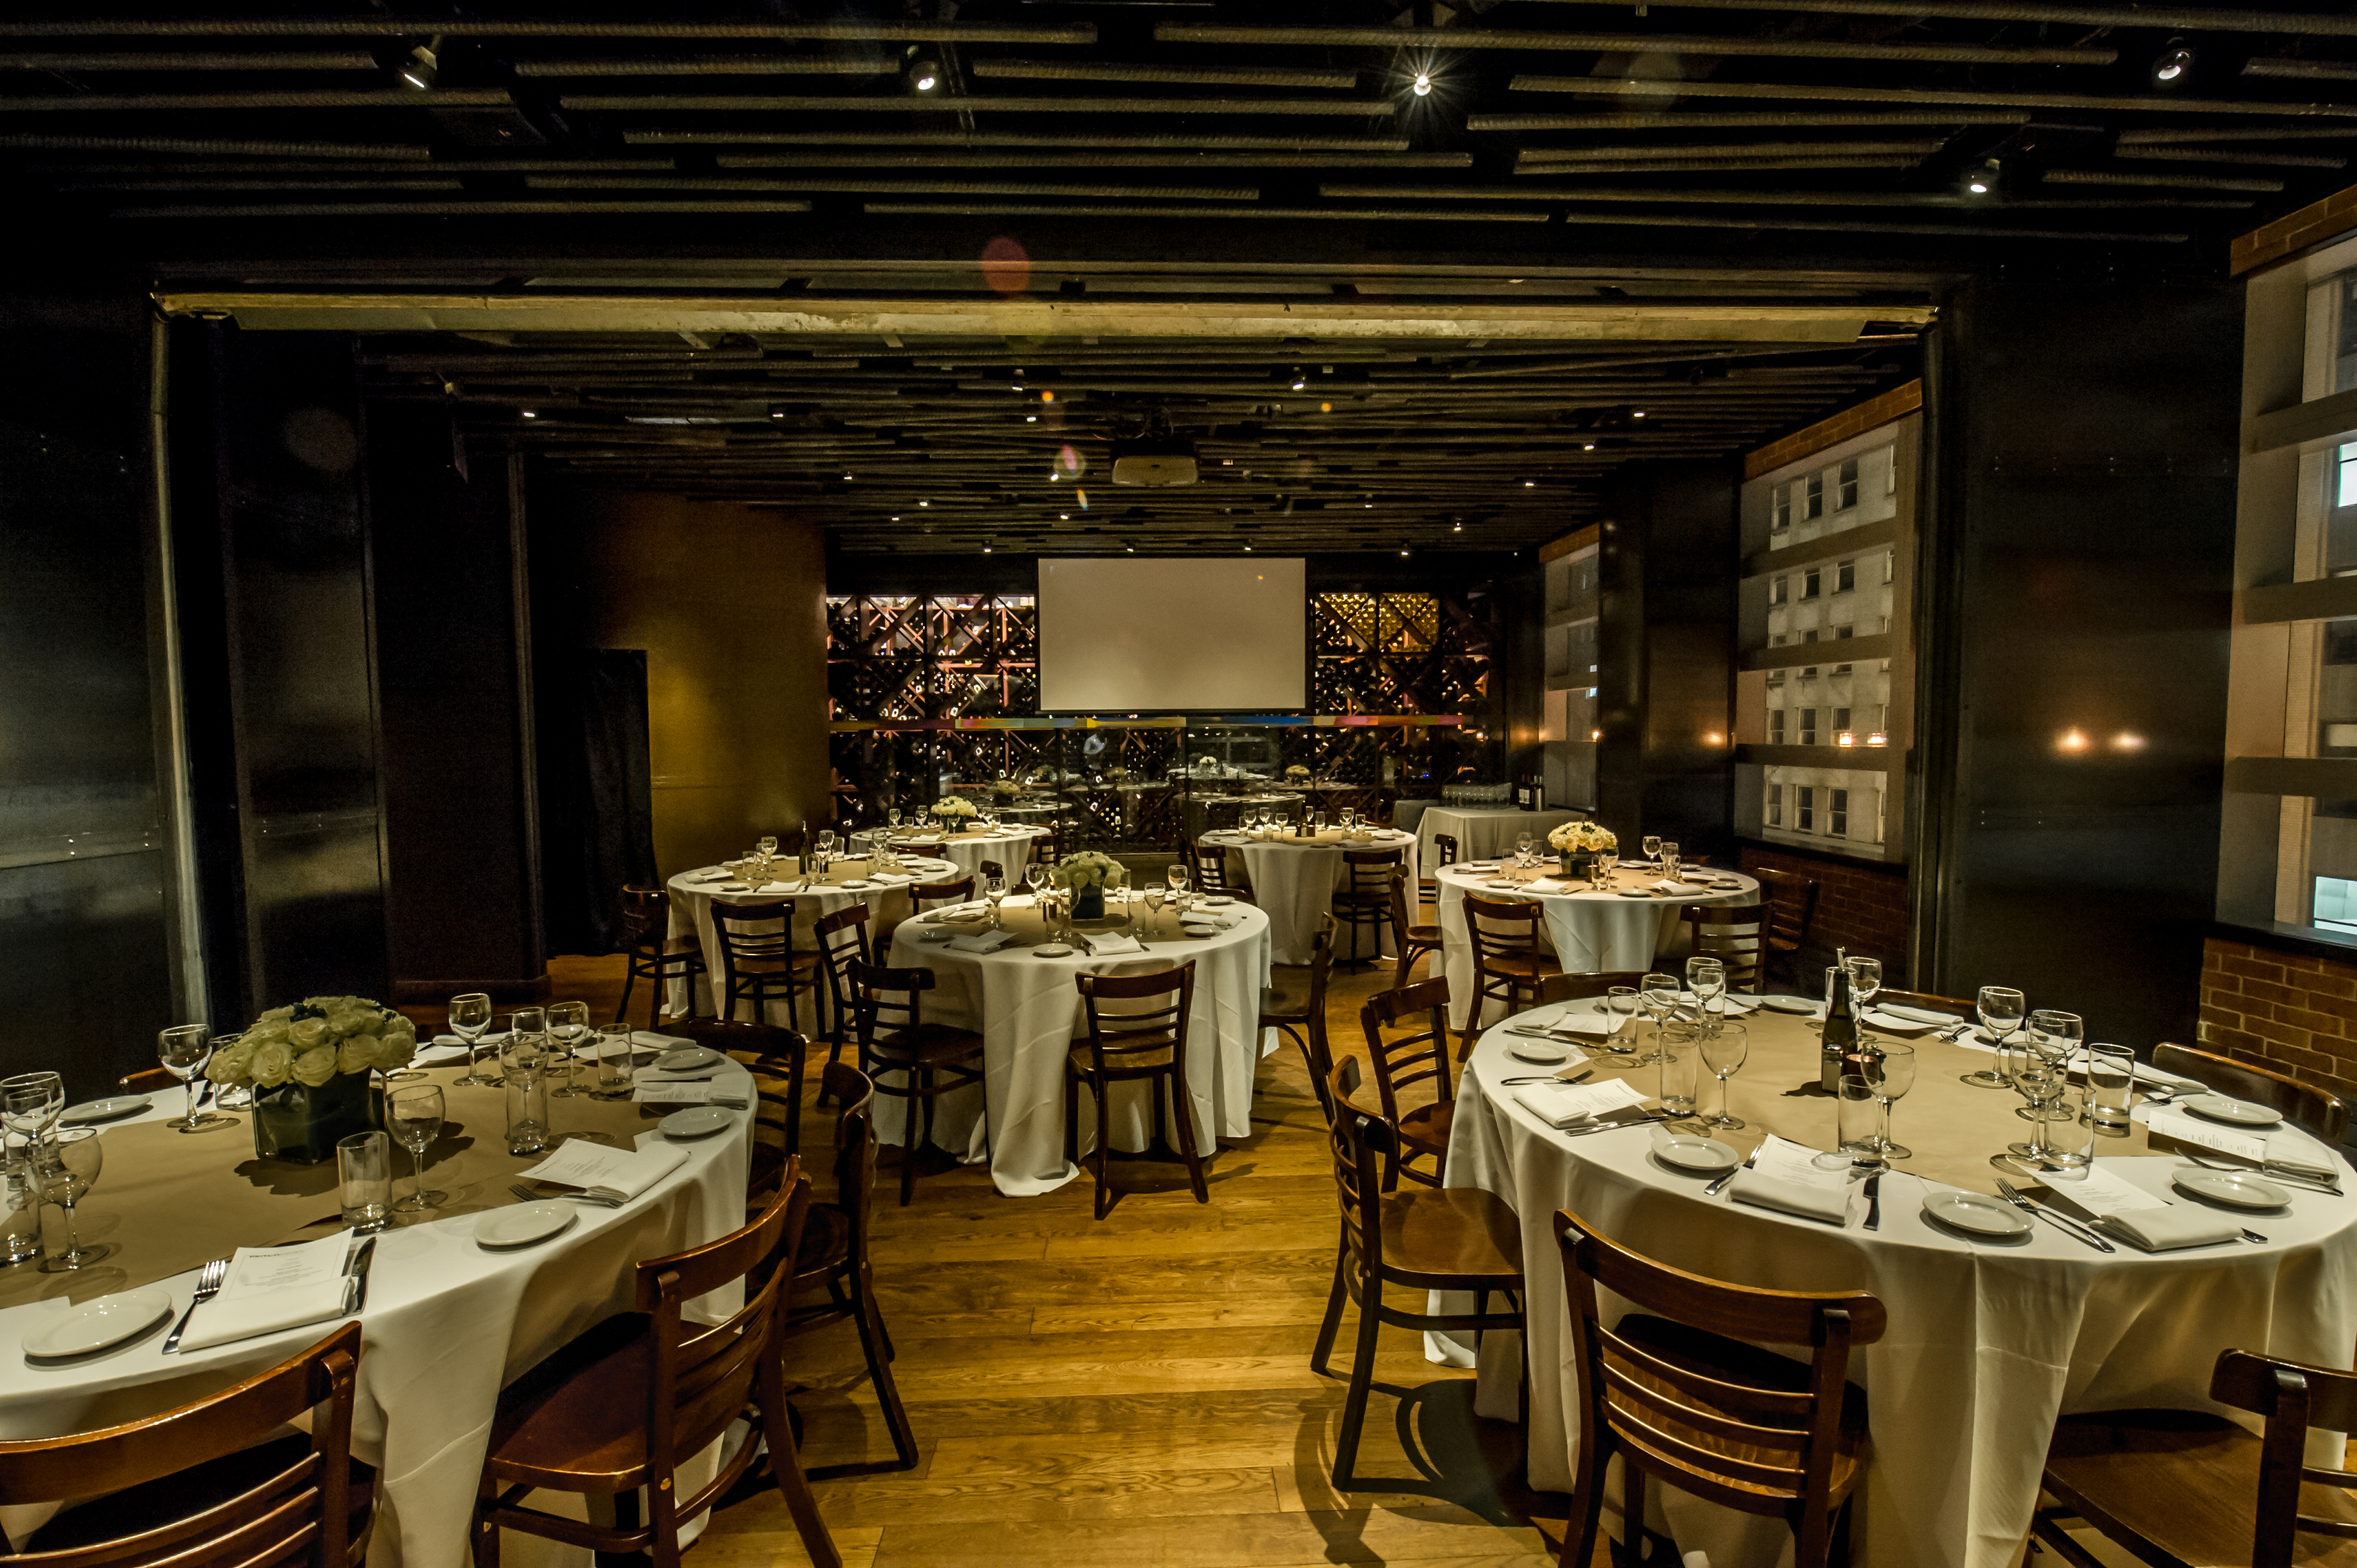 Photo #4 East + West Wine Room at landmarc [at the time warner center]